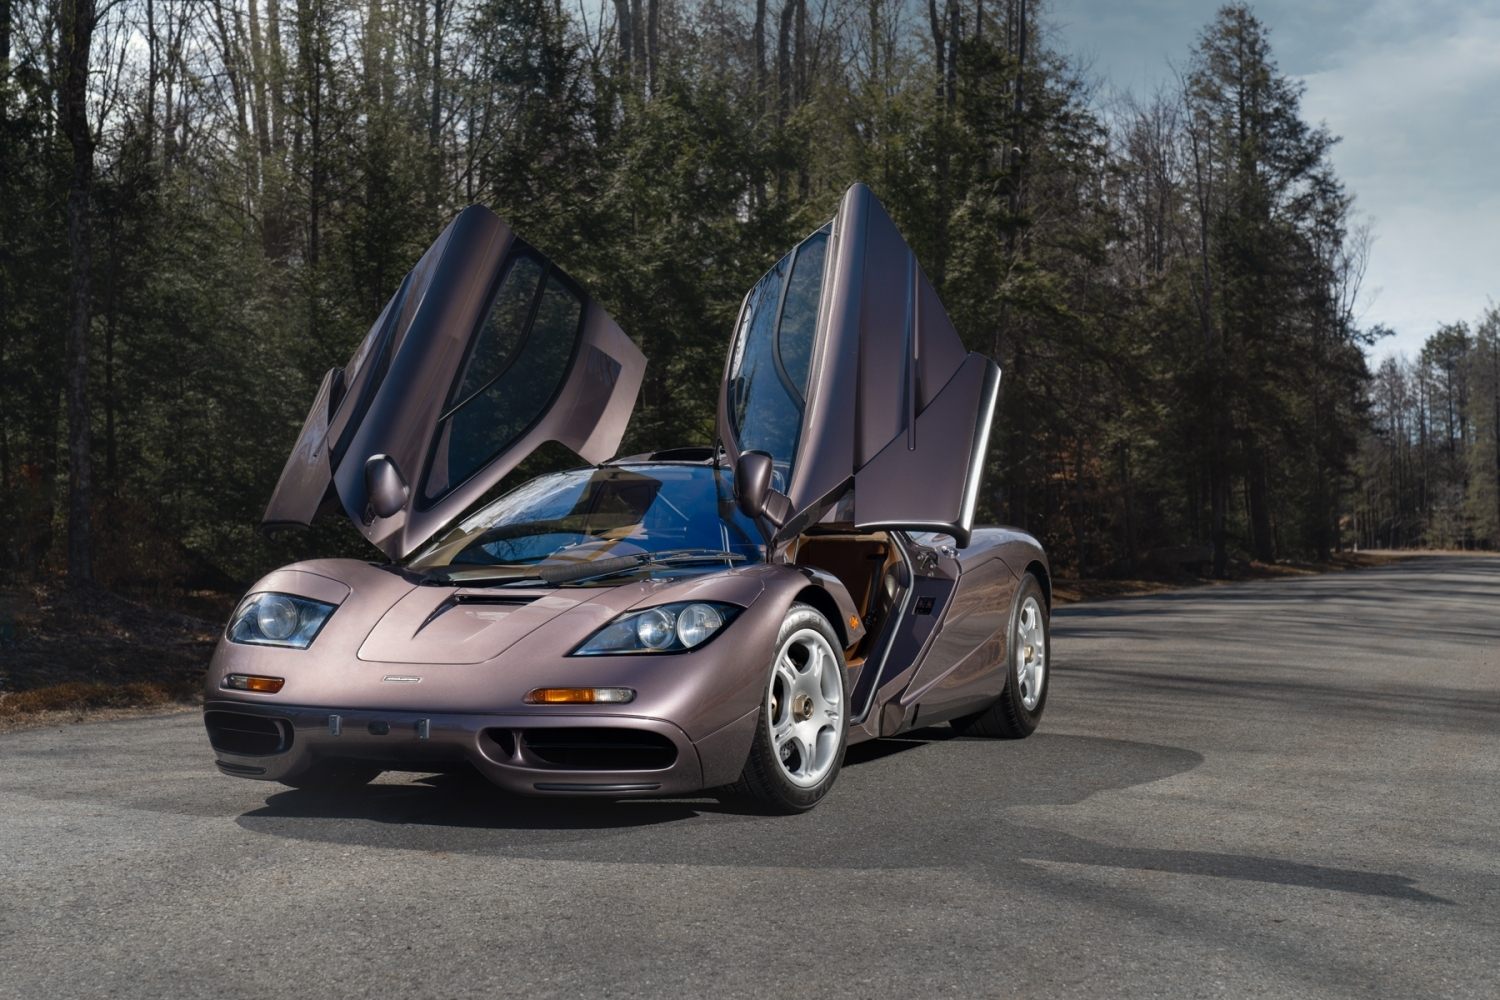 McLaren F1 Road Car Sets Record Price at Auction